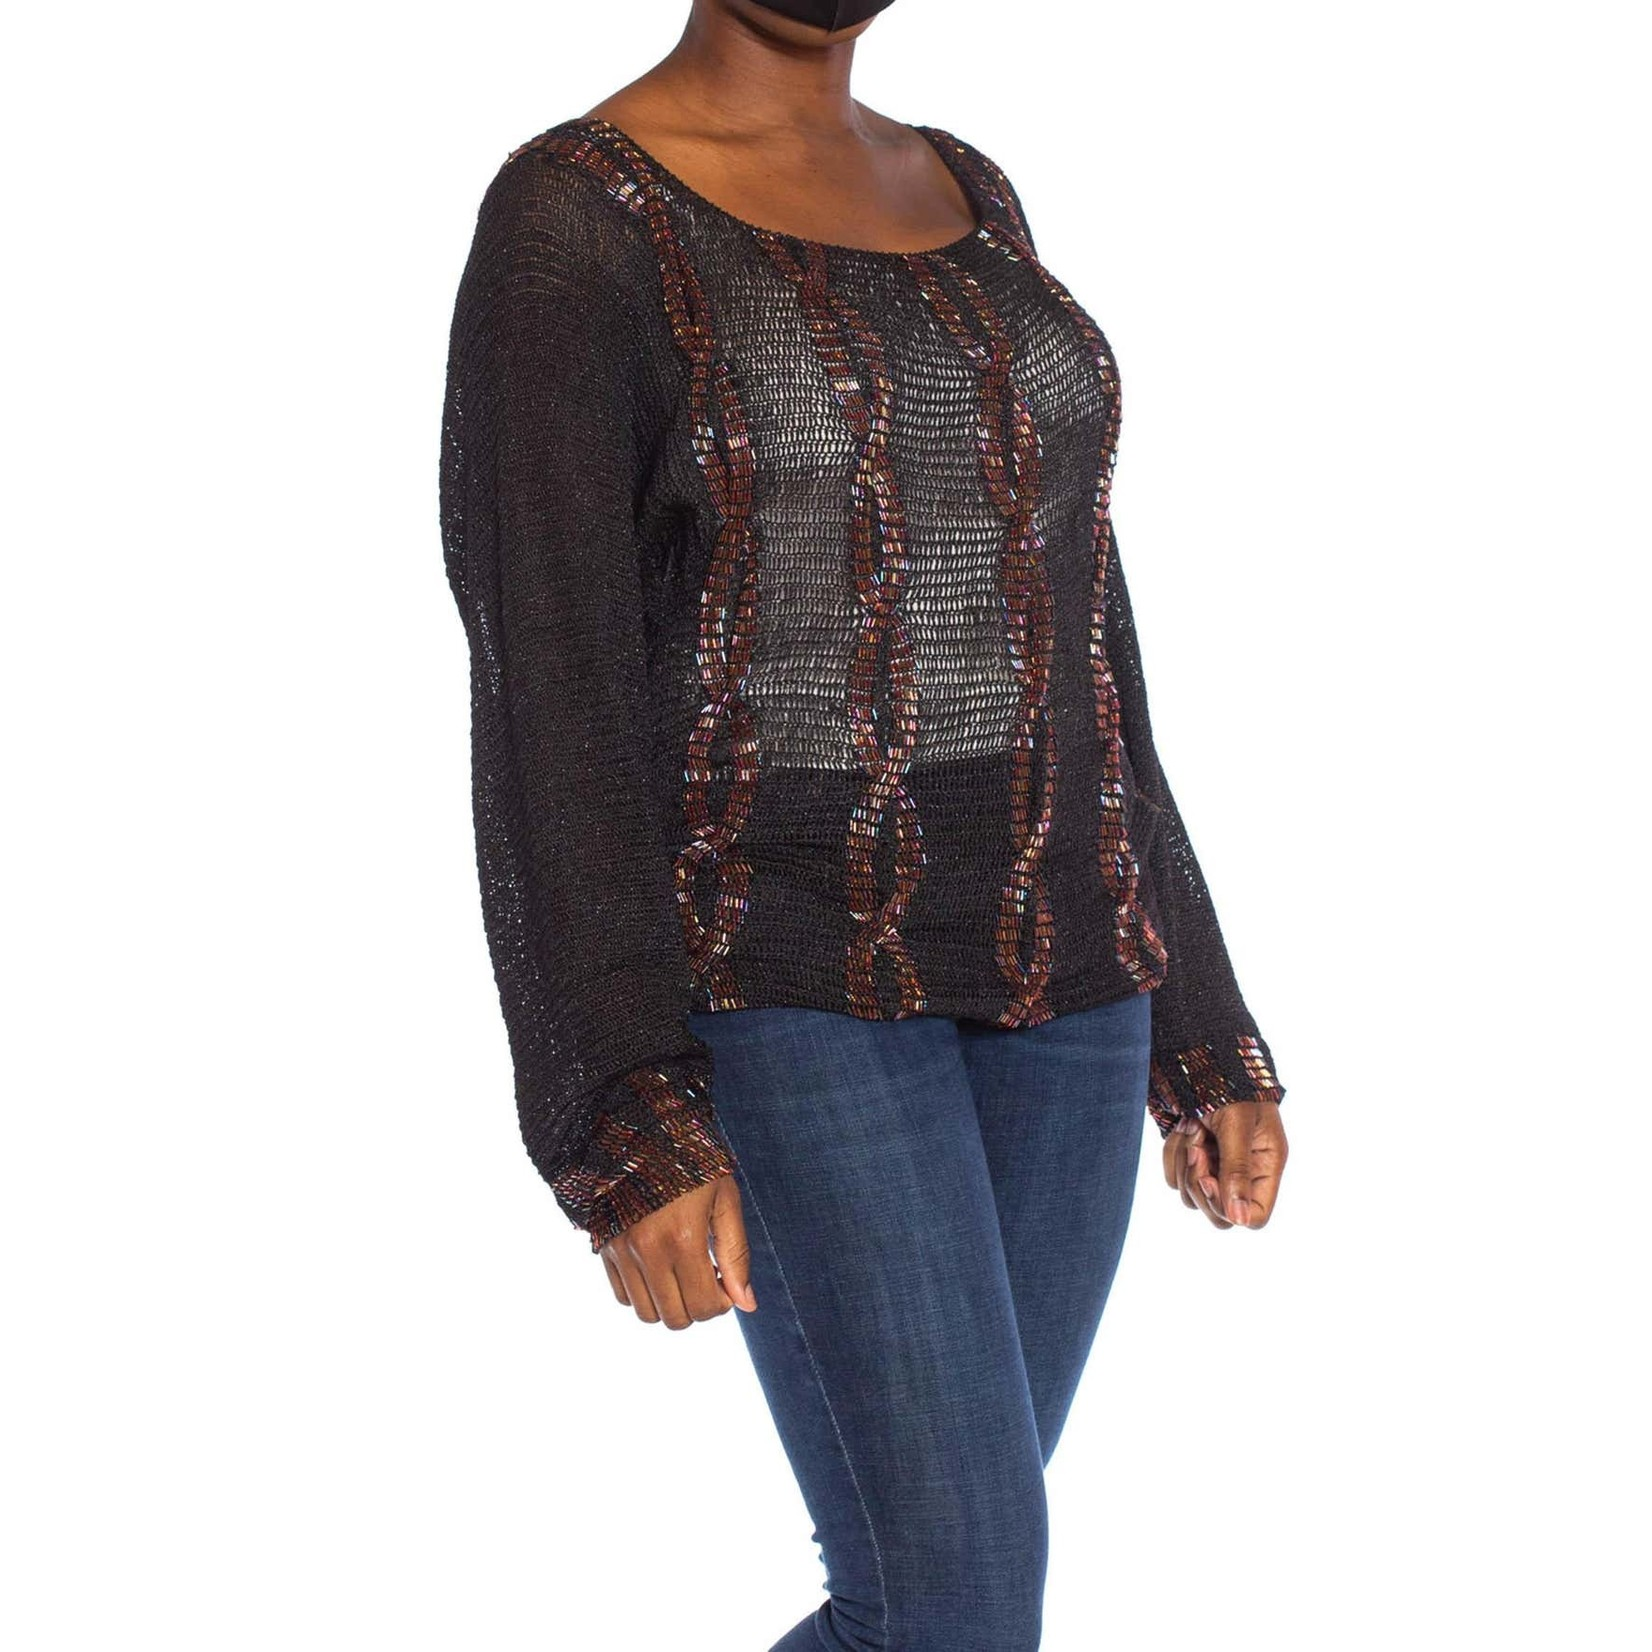 Morphew 1980s Black Rayon/Lurex Knit Sweater with Red Beaded Faux Knit Bands